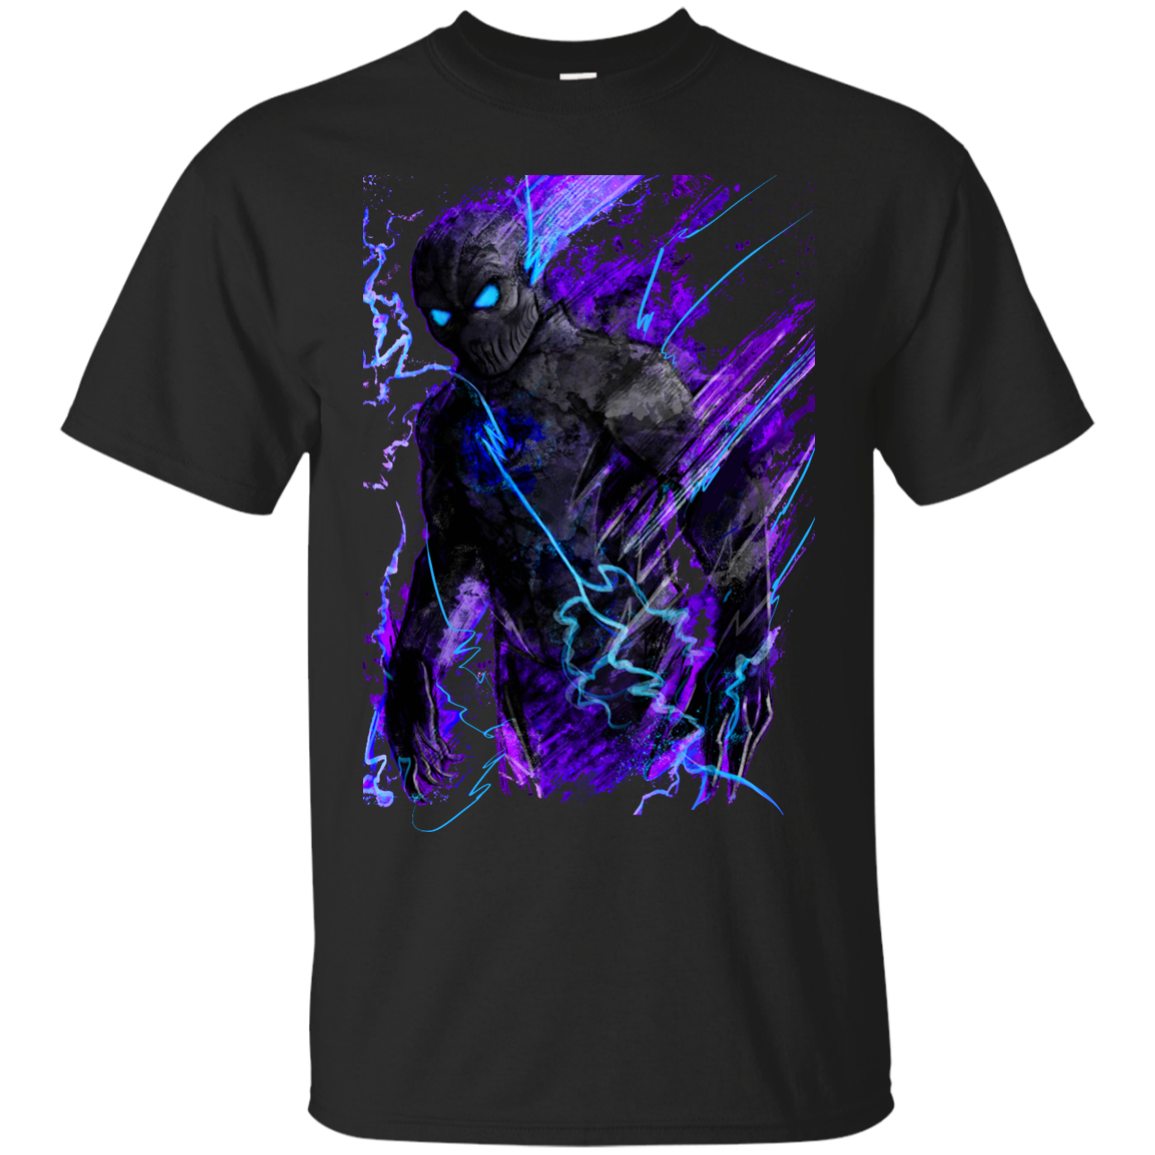 Zoom is coming for you T-Shirt Men